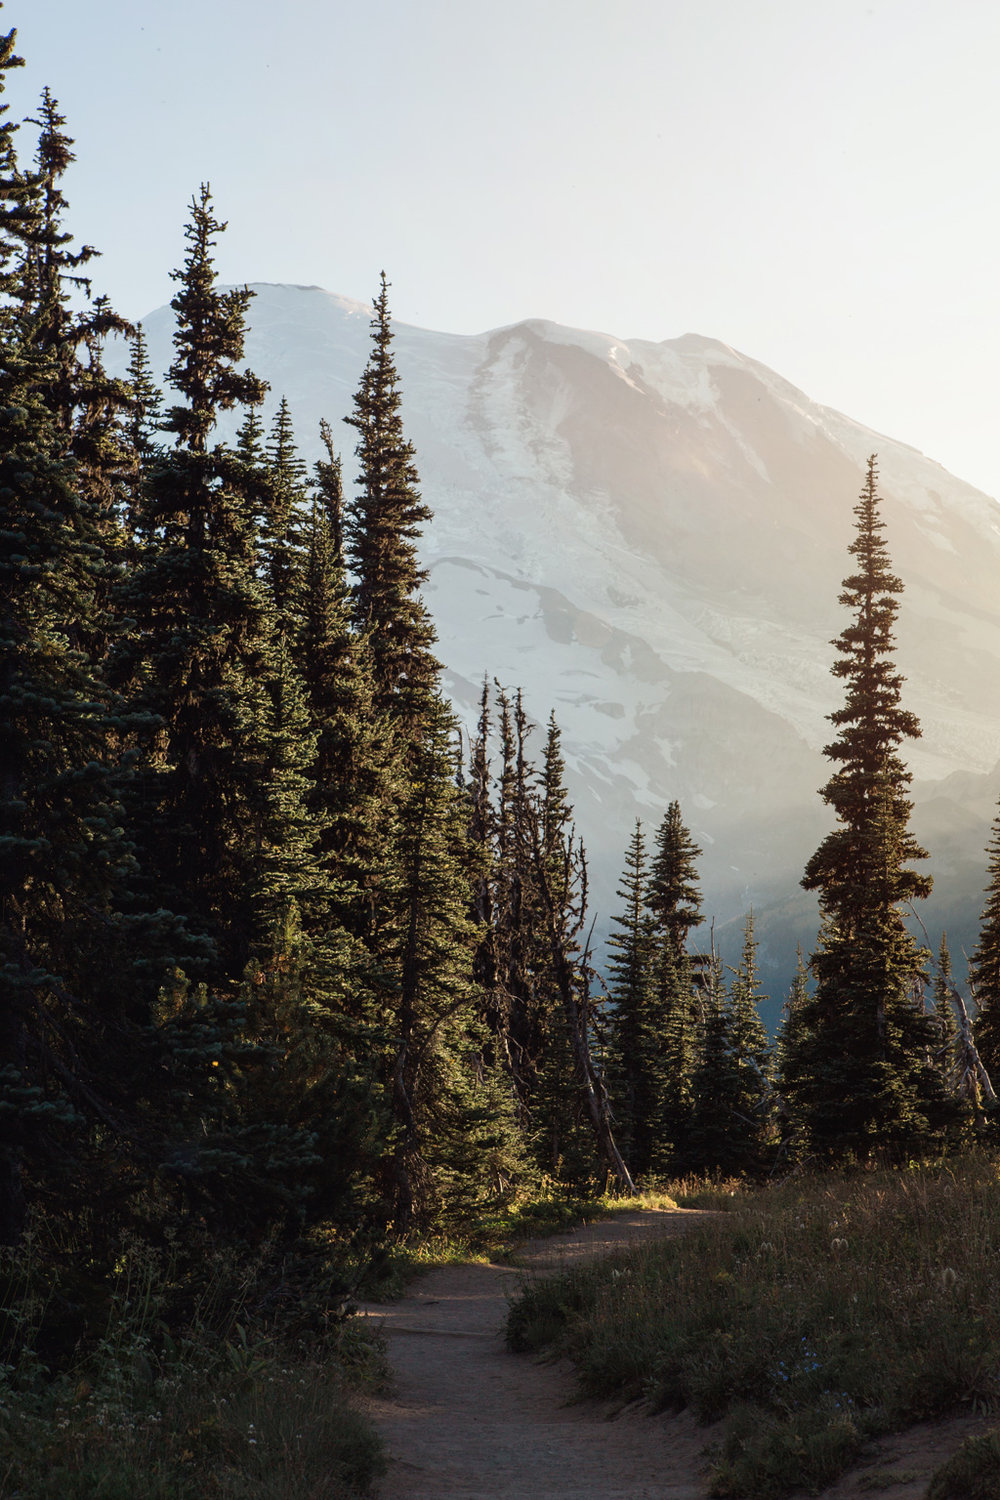 CindyGiovagnoli_Redwoods_CraterLake_MountRainier_PNW_National_Park_trees_camp_road_trip-007.jpg